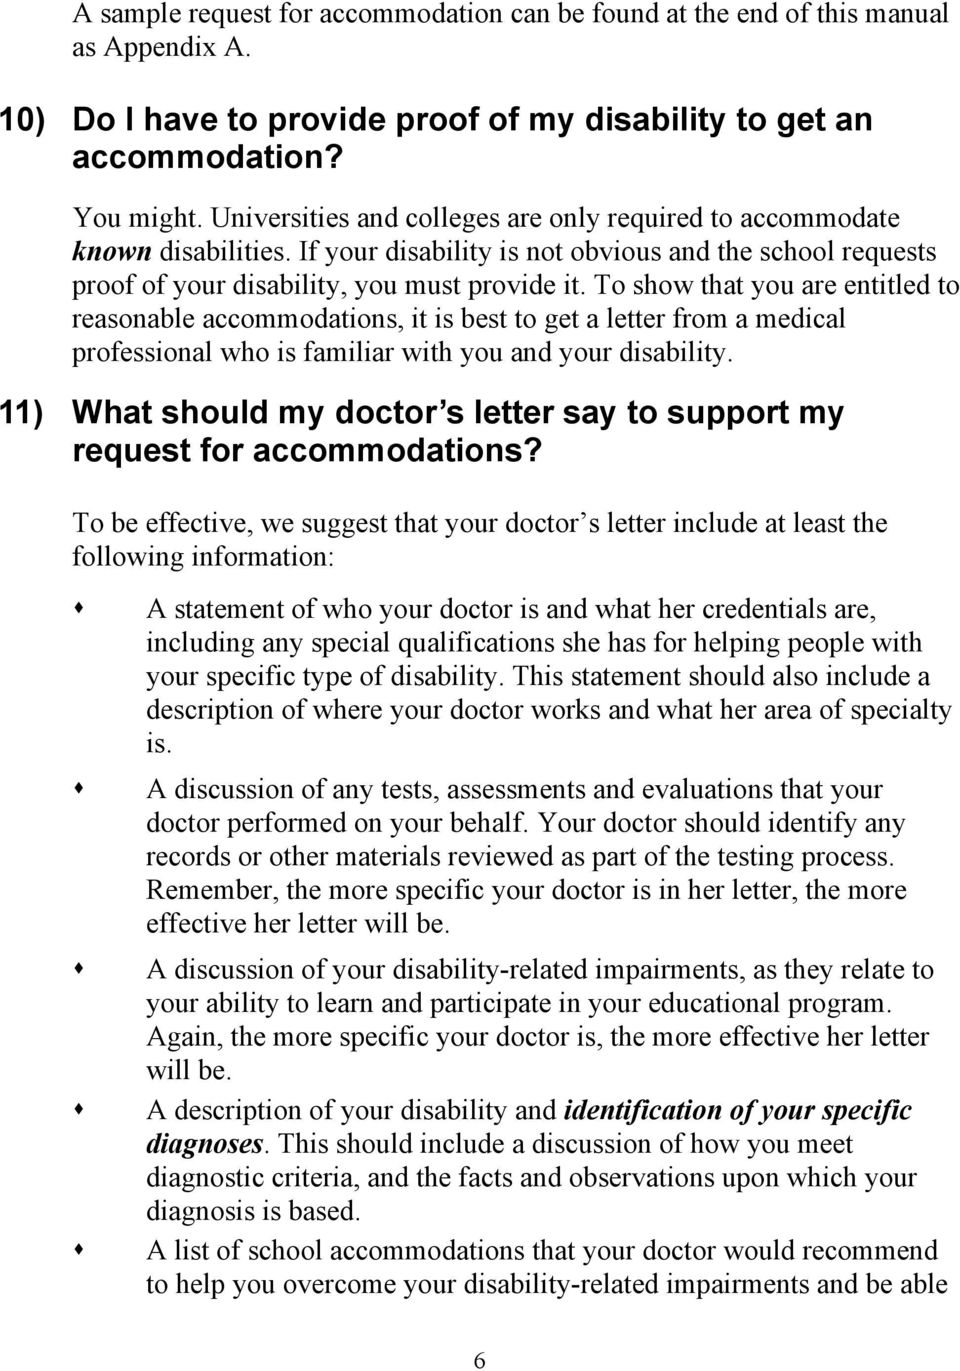 To show that you are entitled to reasonable accommodations, it is best to get a letter from a medical professional who is familiar with you and your disability.